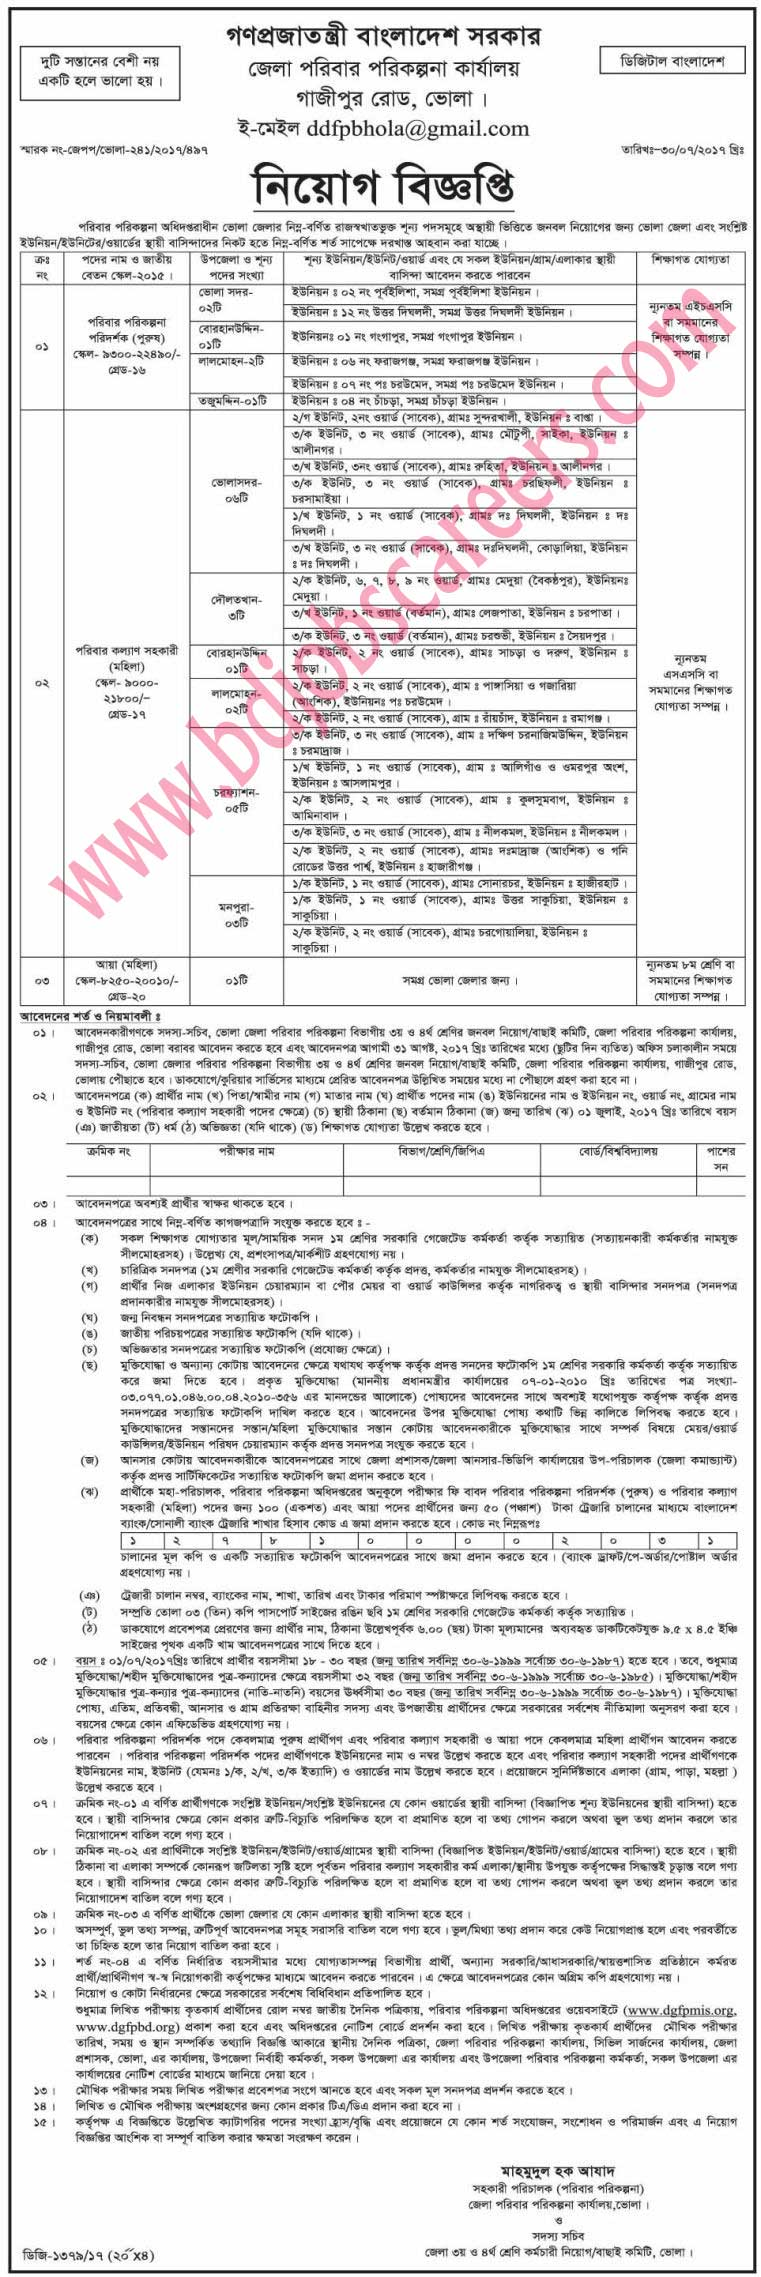 Bhola District Family Planning Office Job Circular 2017